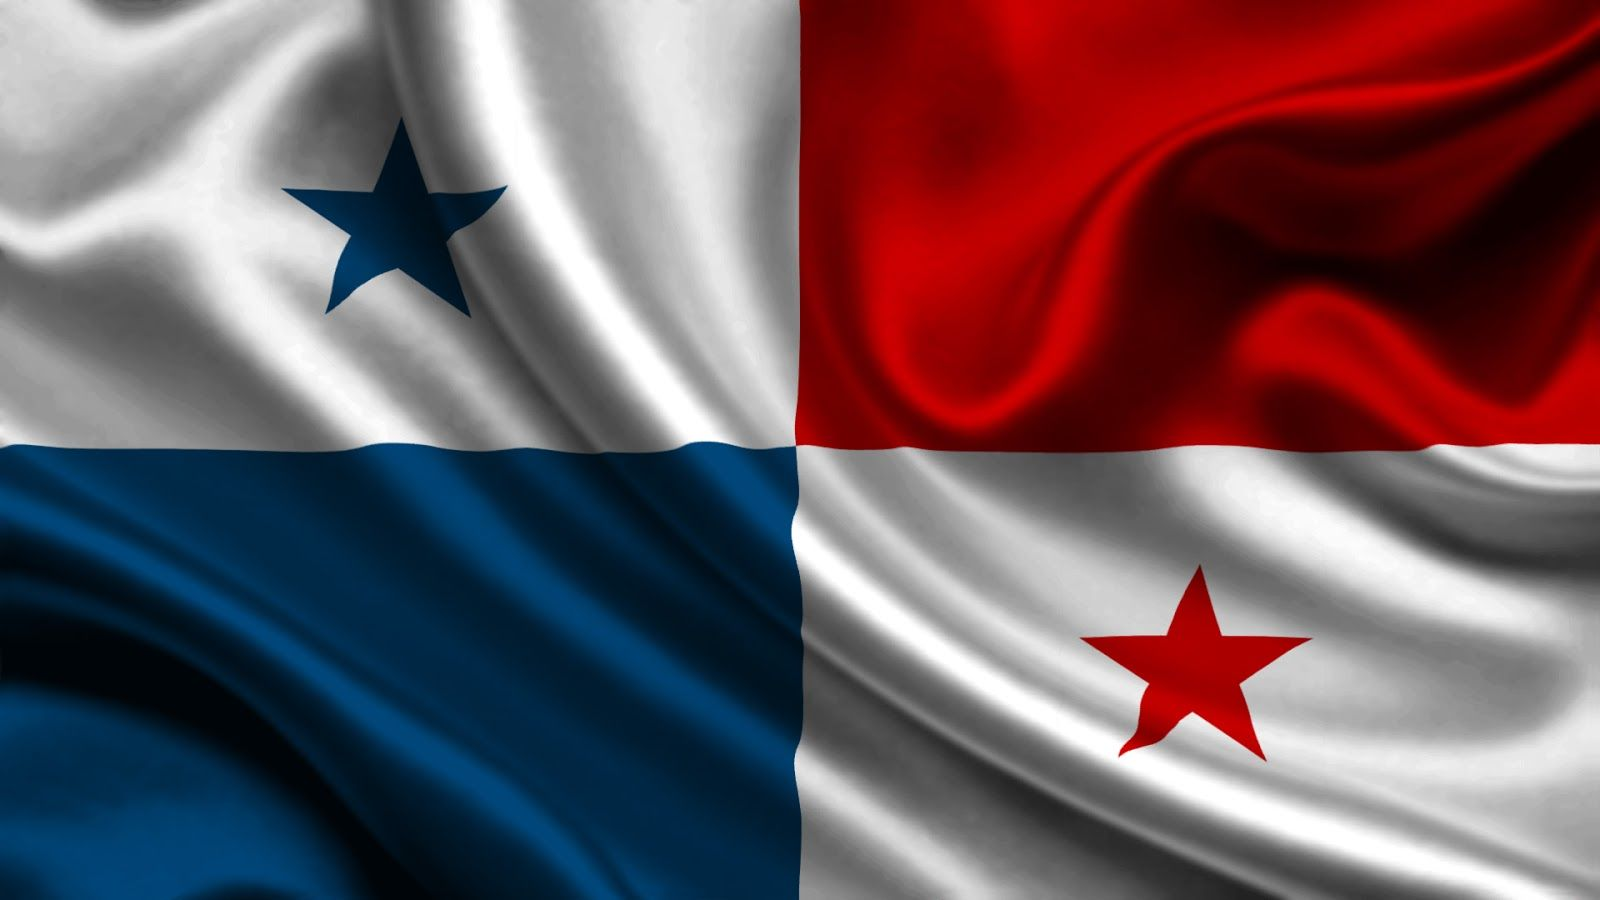 Flag Background Download Flag Icon Of Panama At Png Format Flag Background Flag Flag Icon